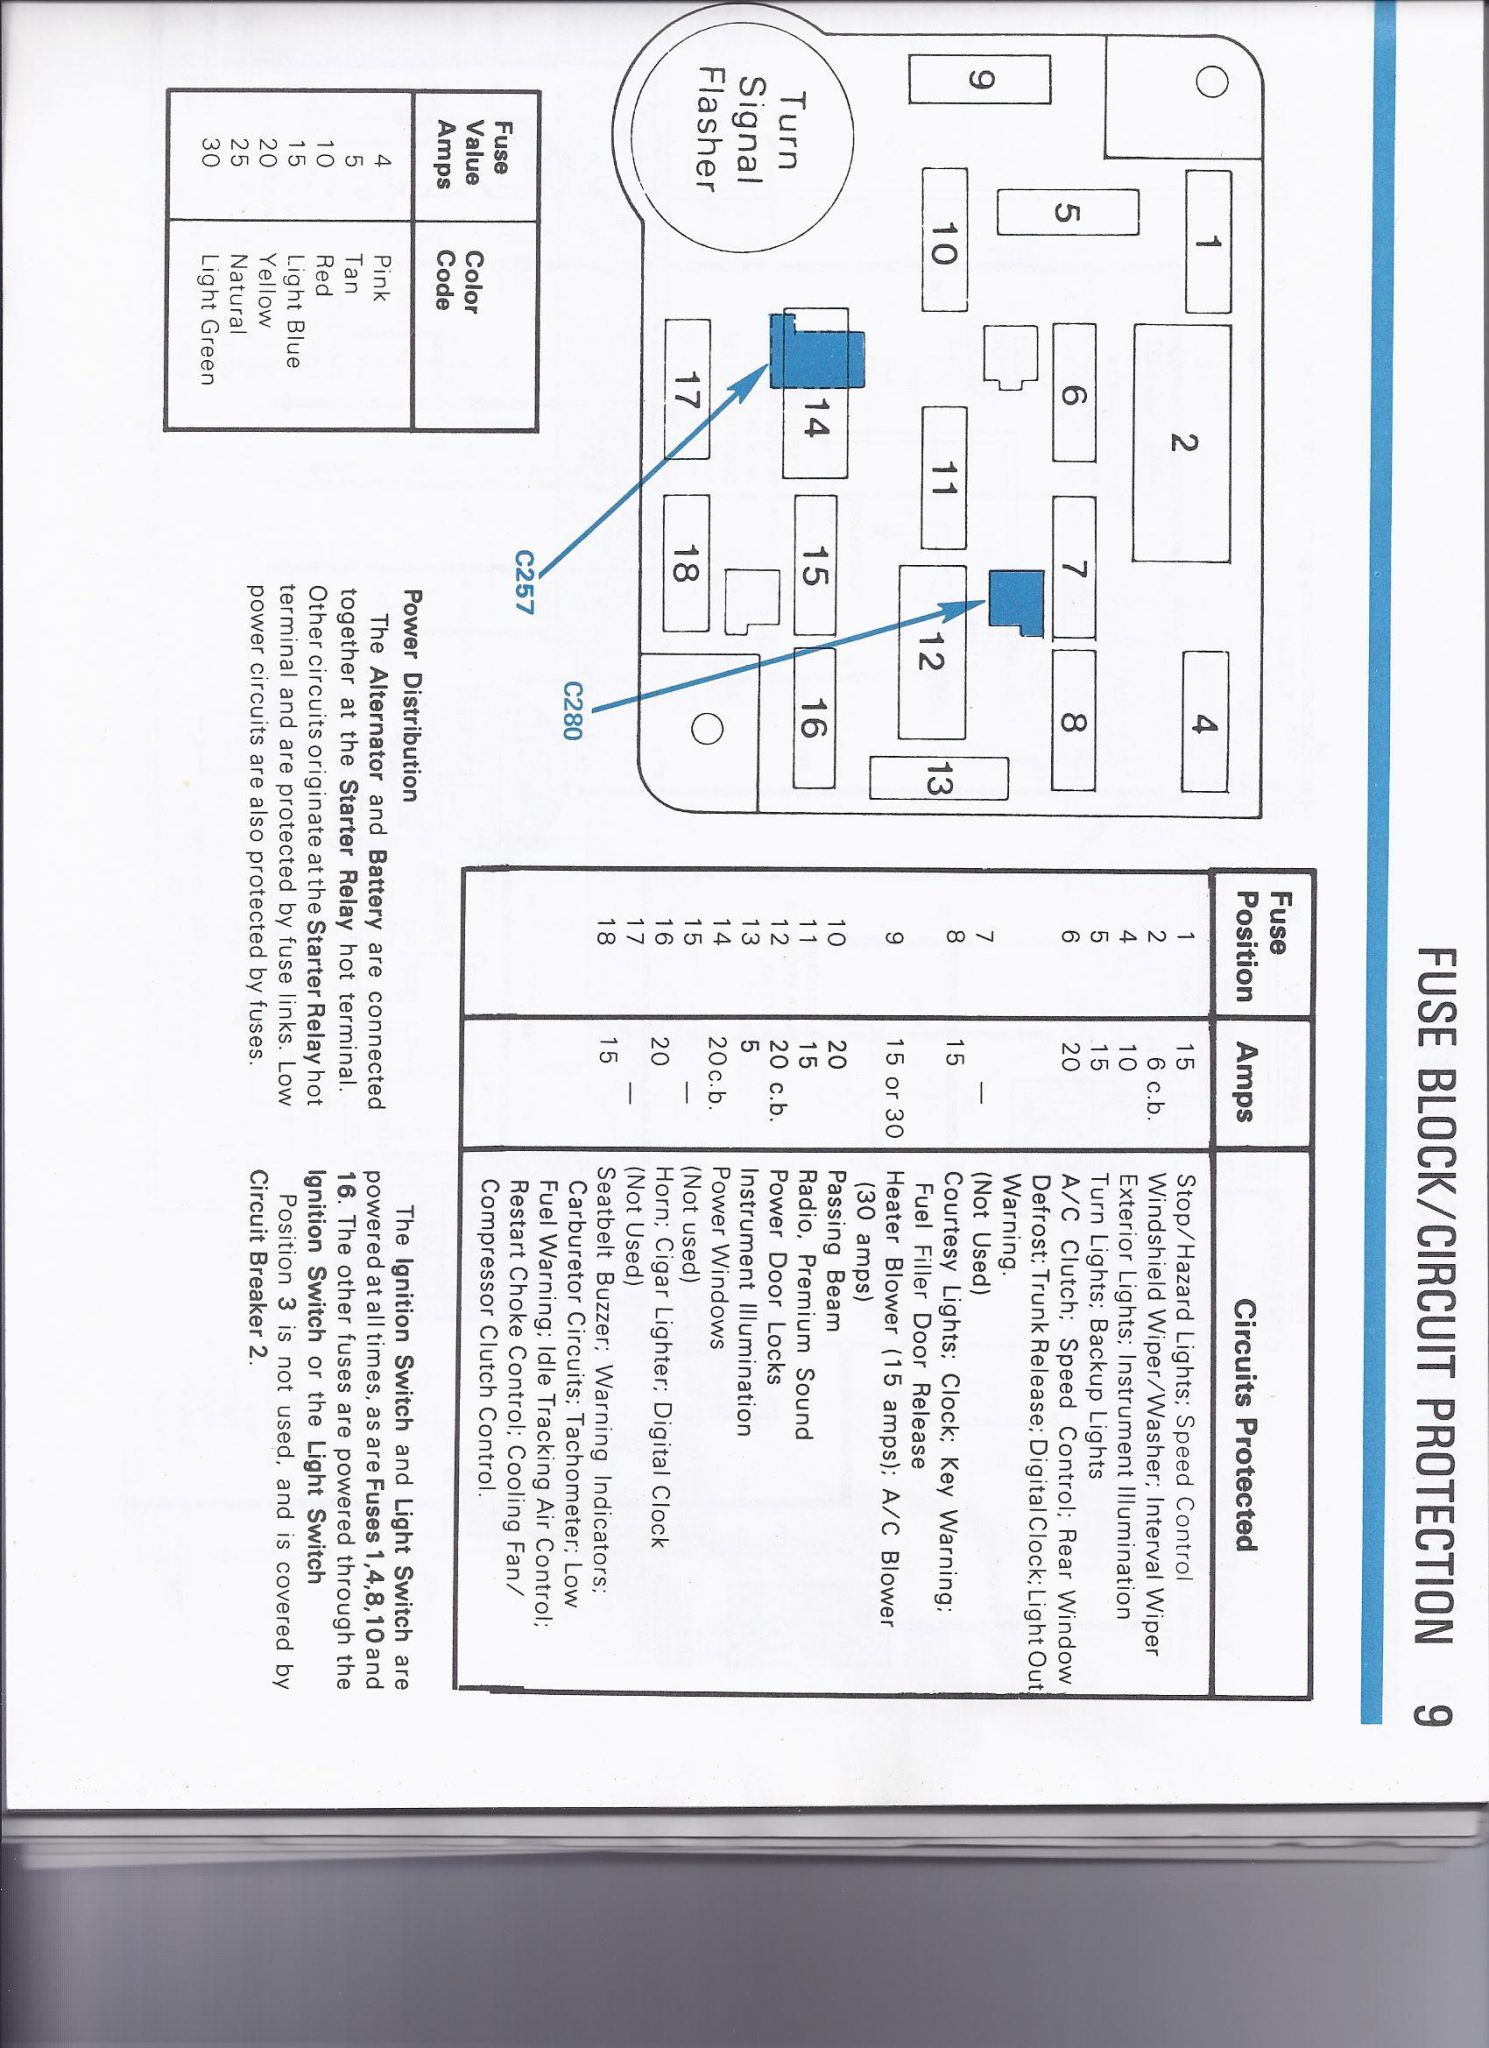 Fuse Box For 86 Mustang Wiring Diagram Schematics 2005 Location Library 1986 Svo